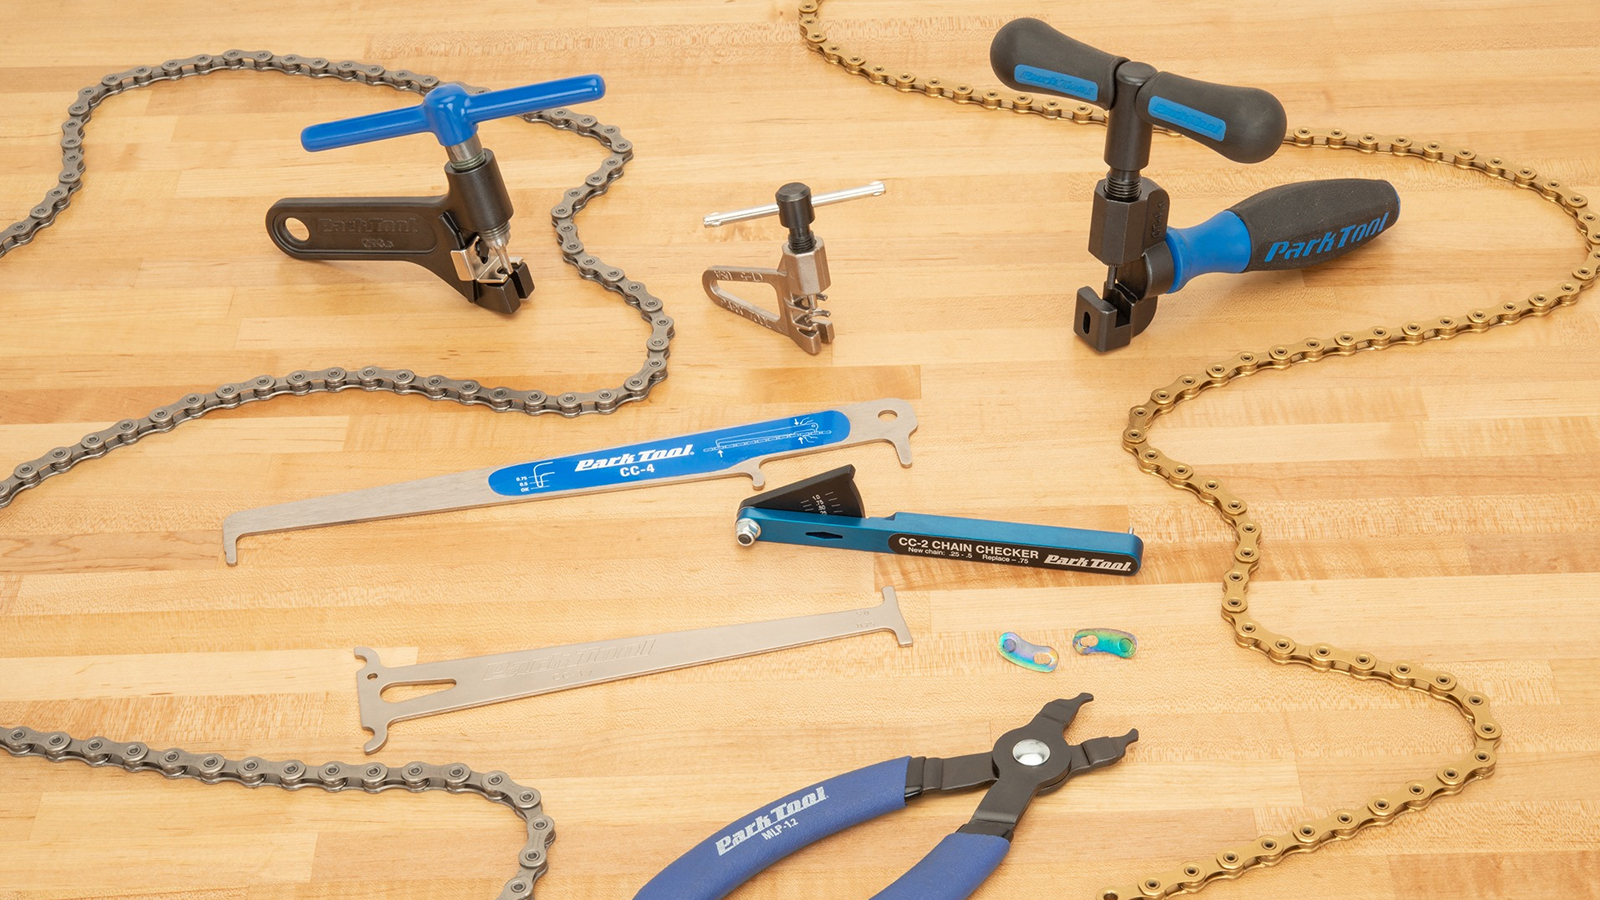 Park Tool: A comprehensive overview